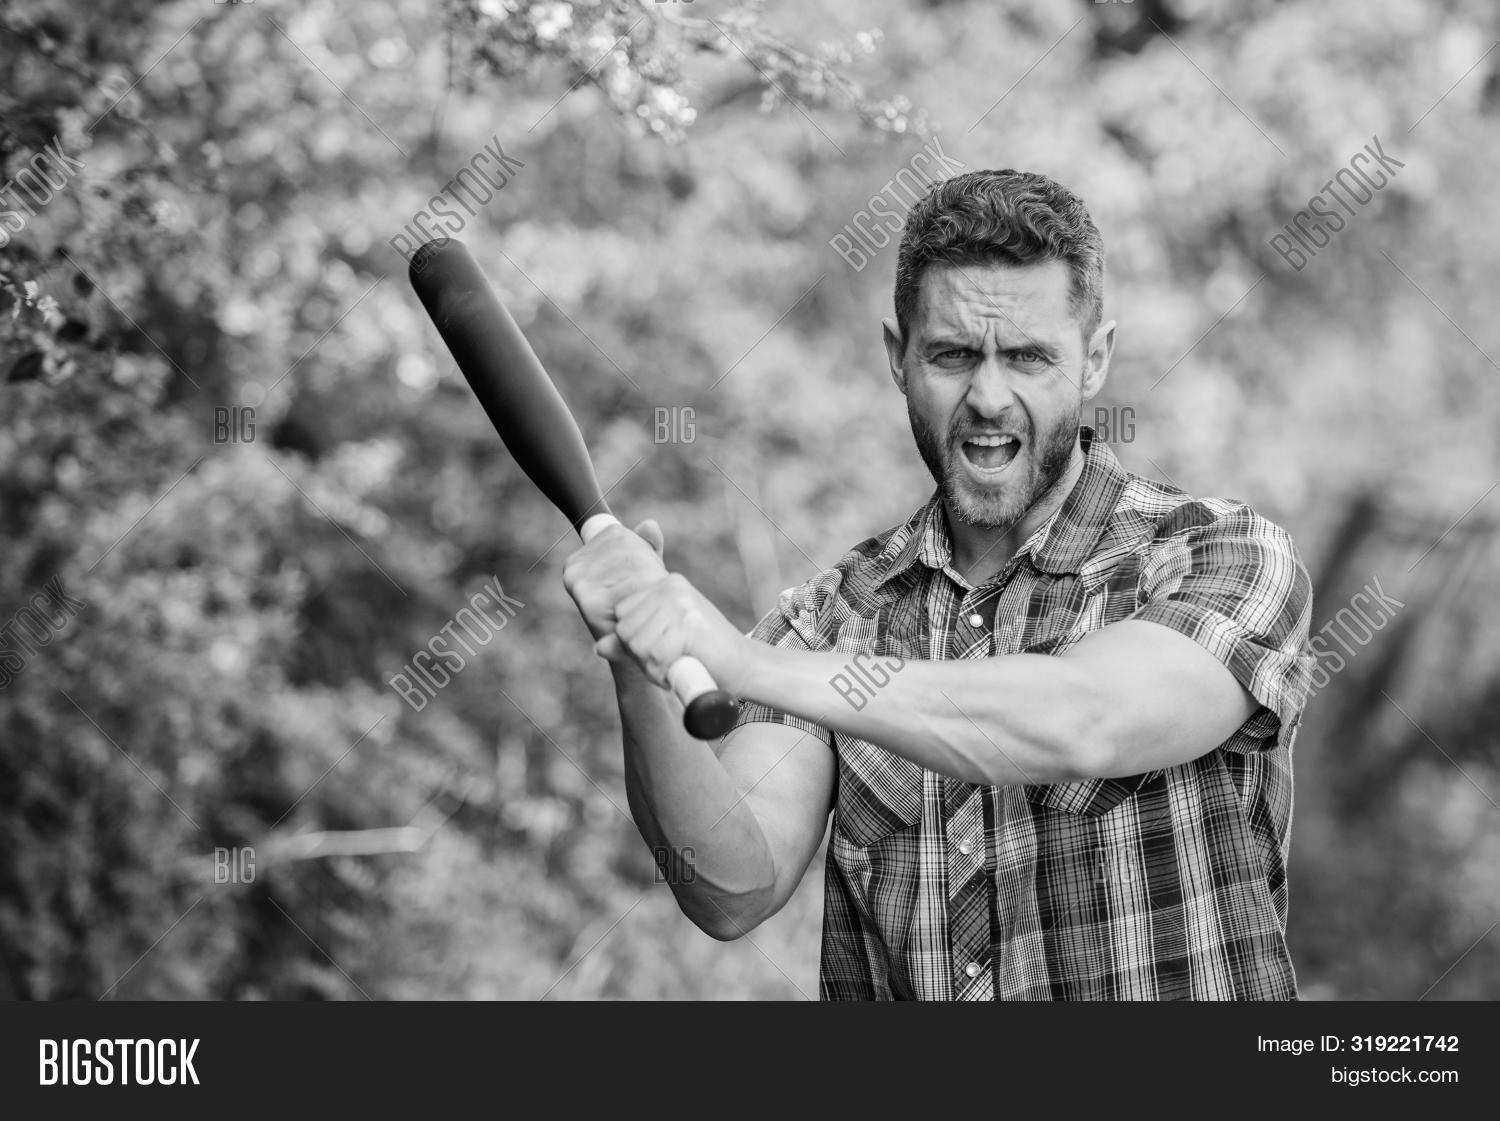 adult,aggression,anger,attack,baseball,bat,beard,bearded,black,bully,caucasian,concept,confident,crime,criminal,cudgel,danger,dangerous,energy,face,fashion,feel,guy,handsome,his,hold,hooligan,male,man,my,nature,power,practice,principle,recreation,sport,strength,strict,strong,temper,unshaven,violence,weapon,wild,workout